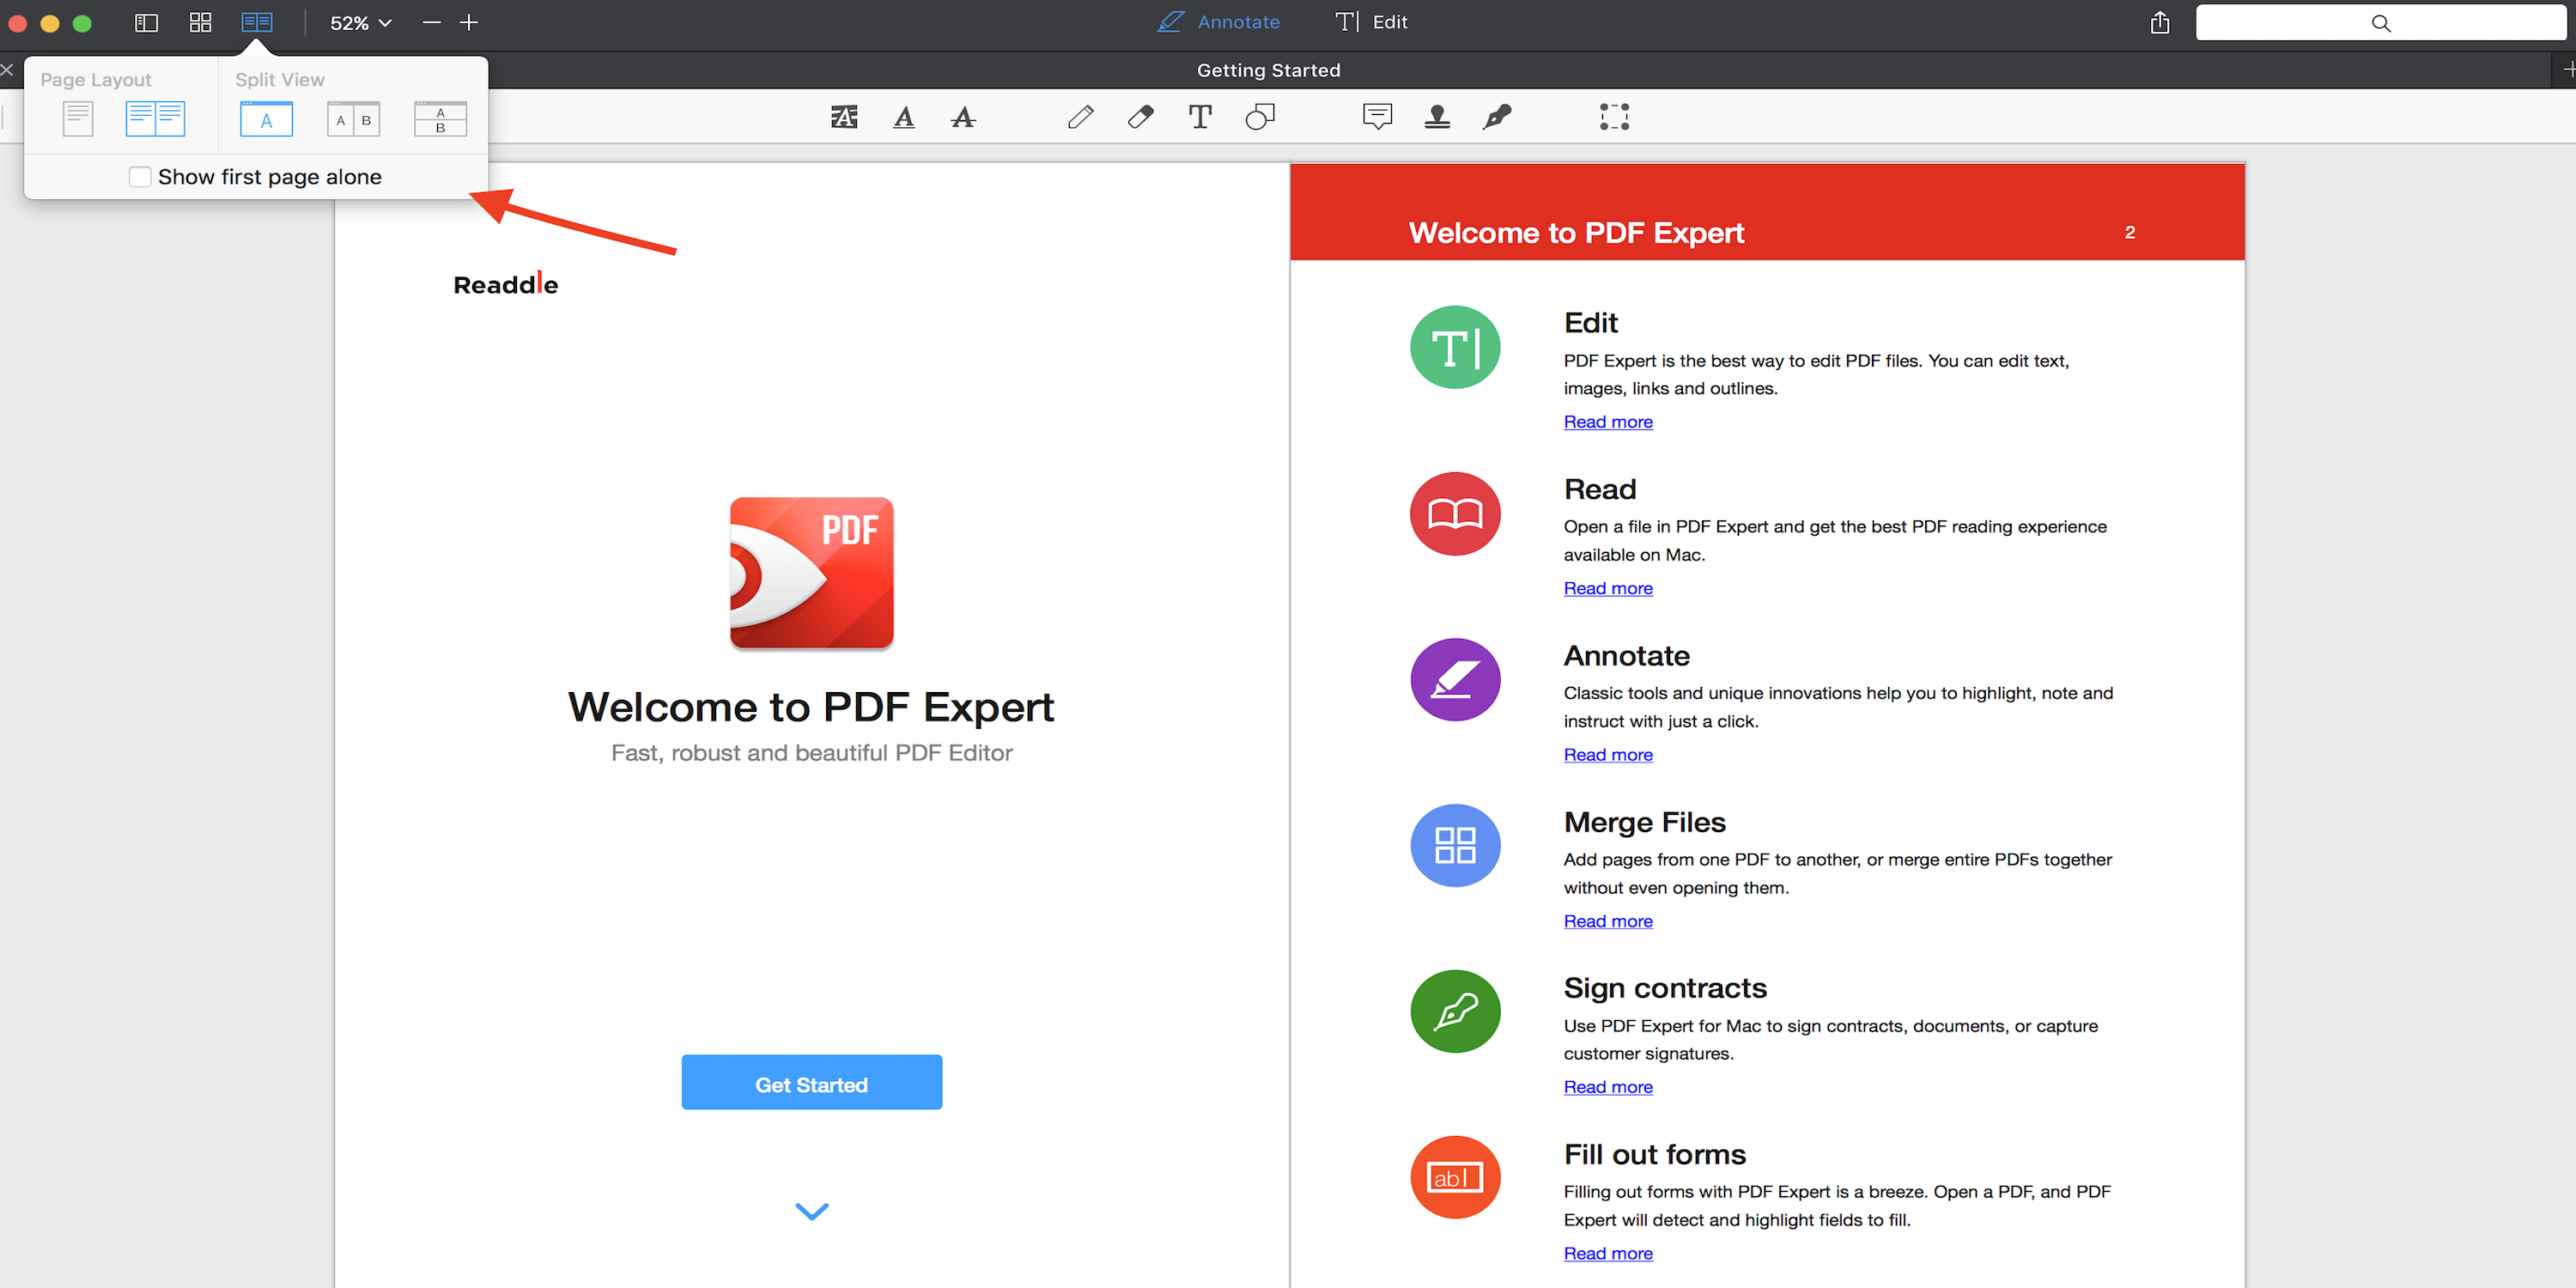 Readdle launches PDF Expert 2 2 for Mac w/ improved UI